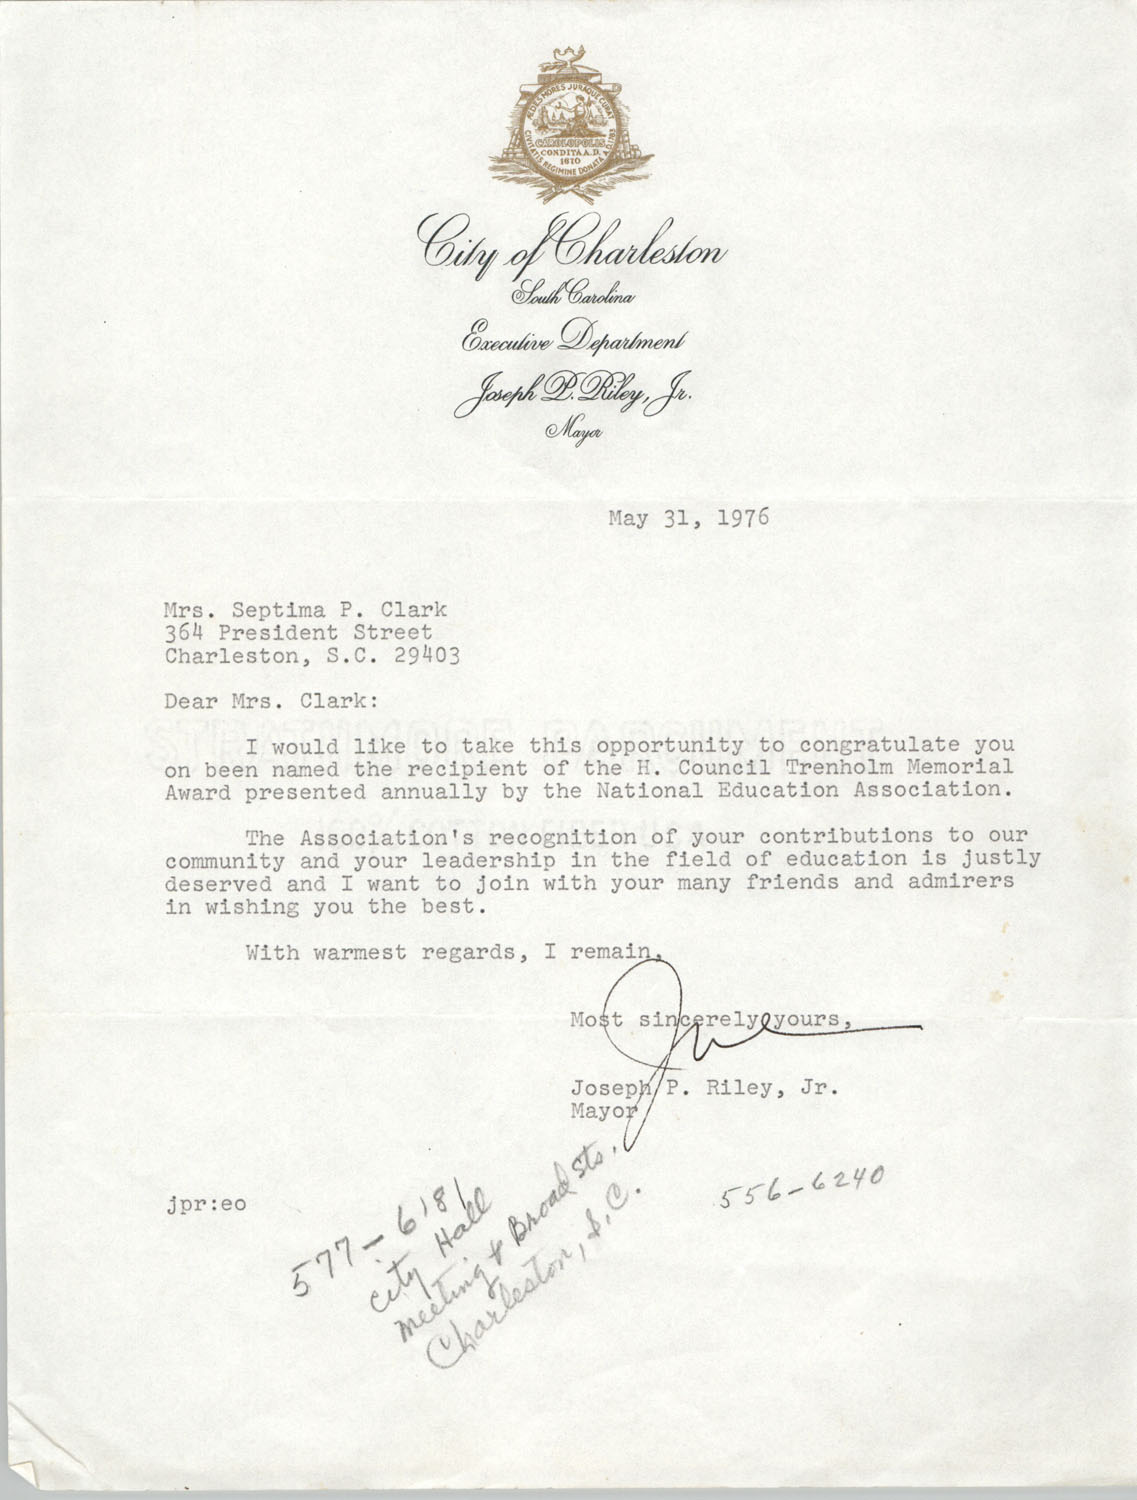 Letter from Joseph P. Riley, Jr. to Septima Clark, May 31, 1976